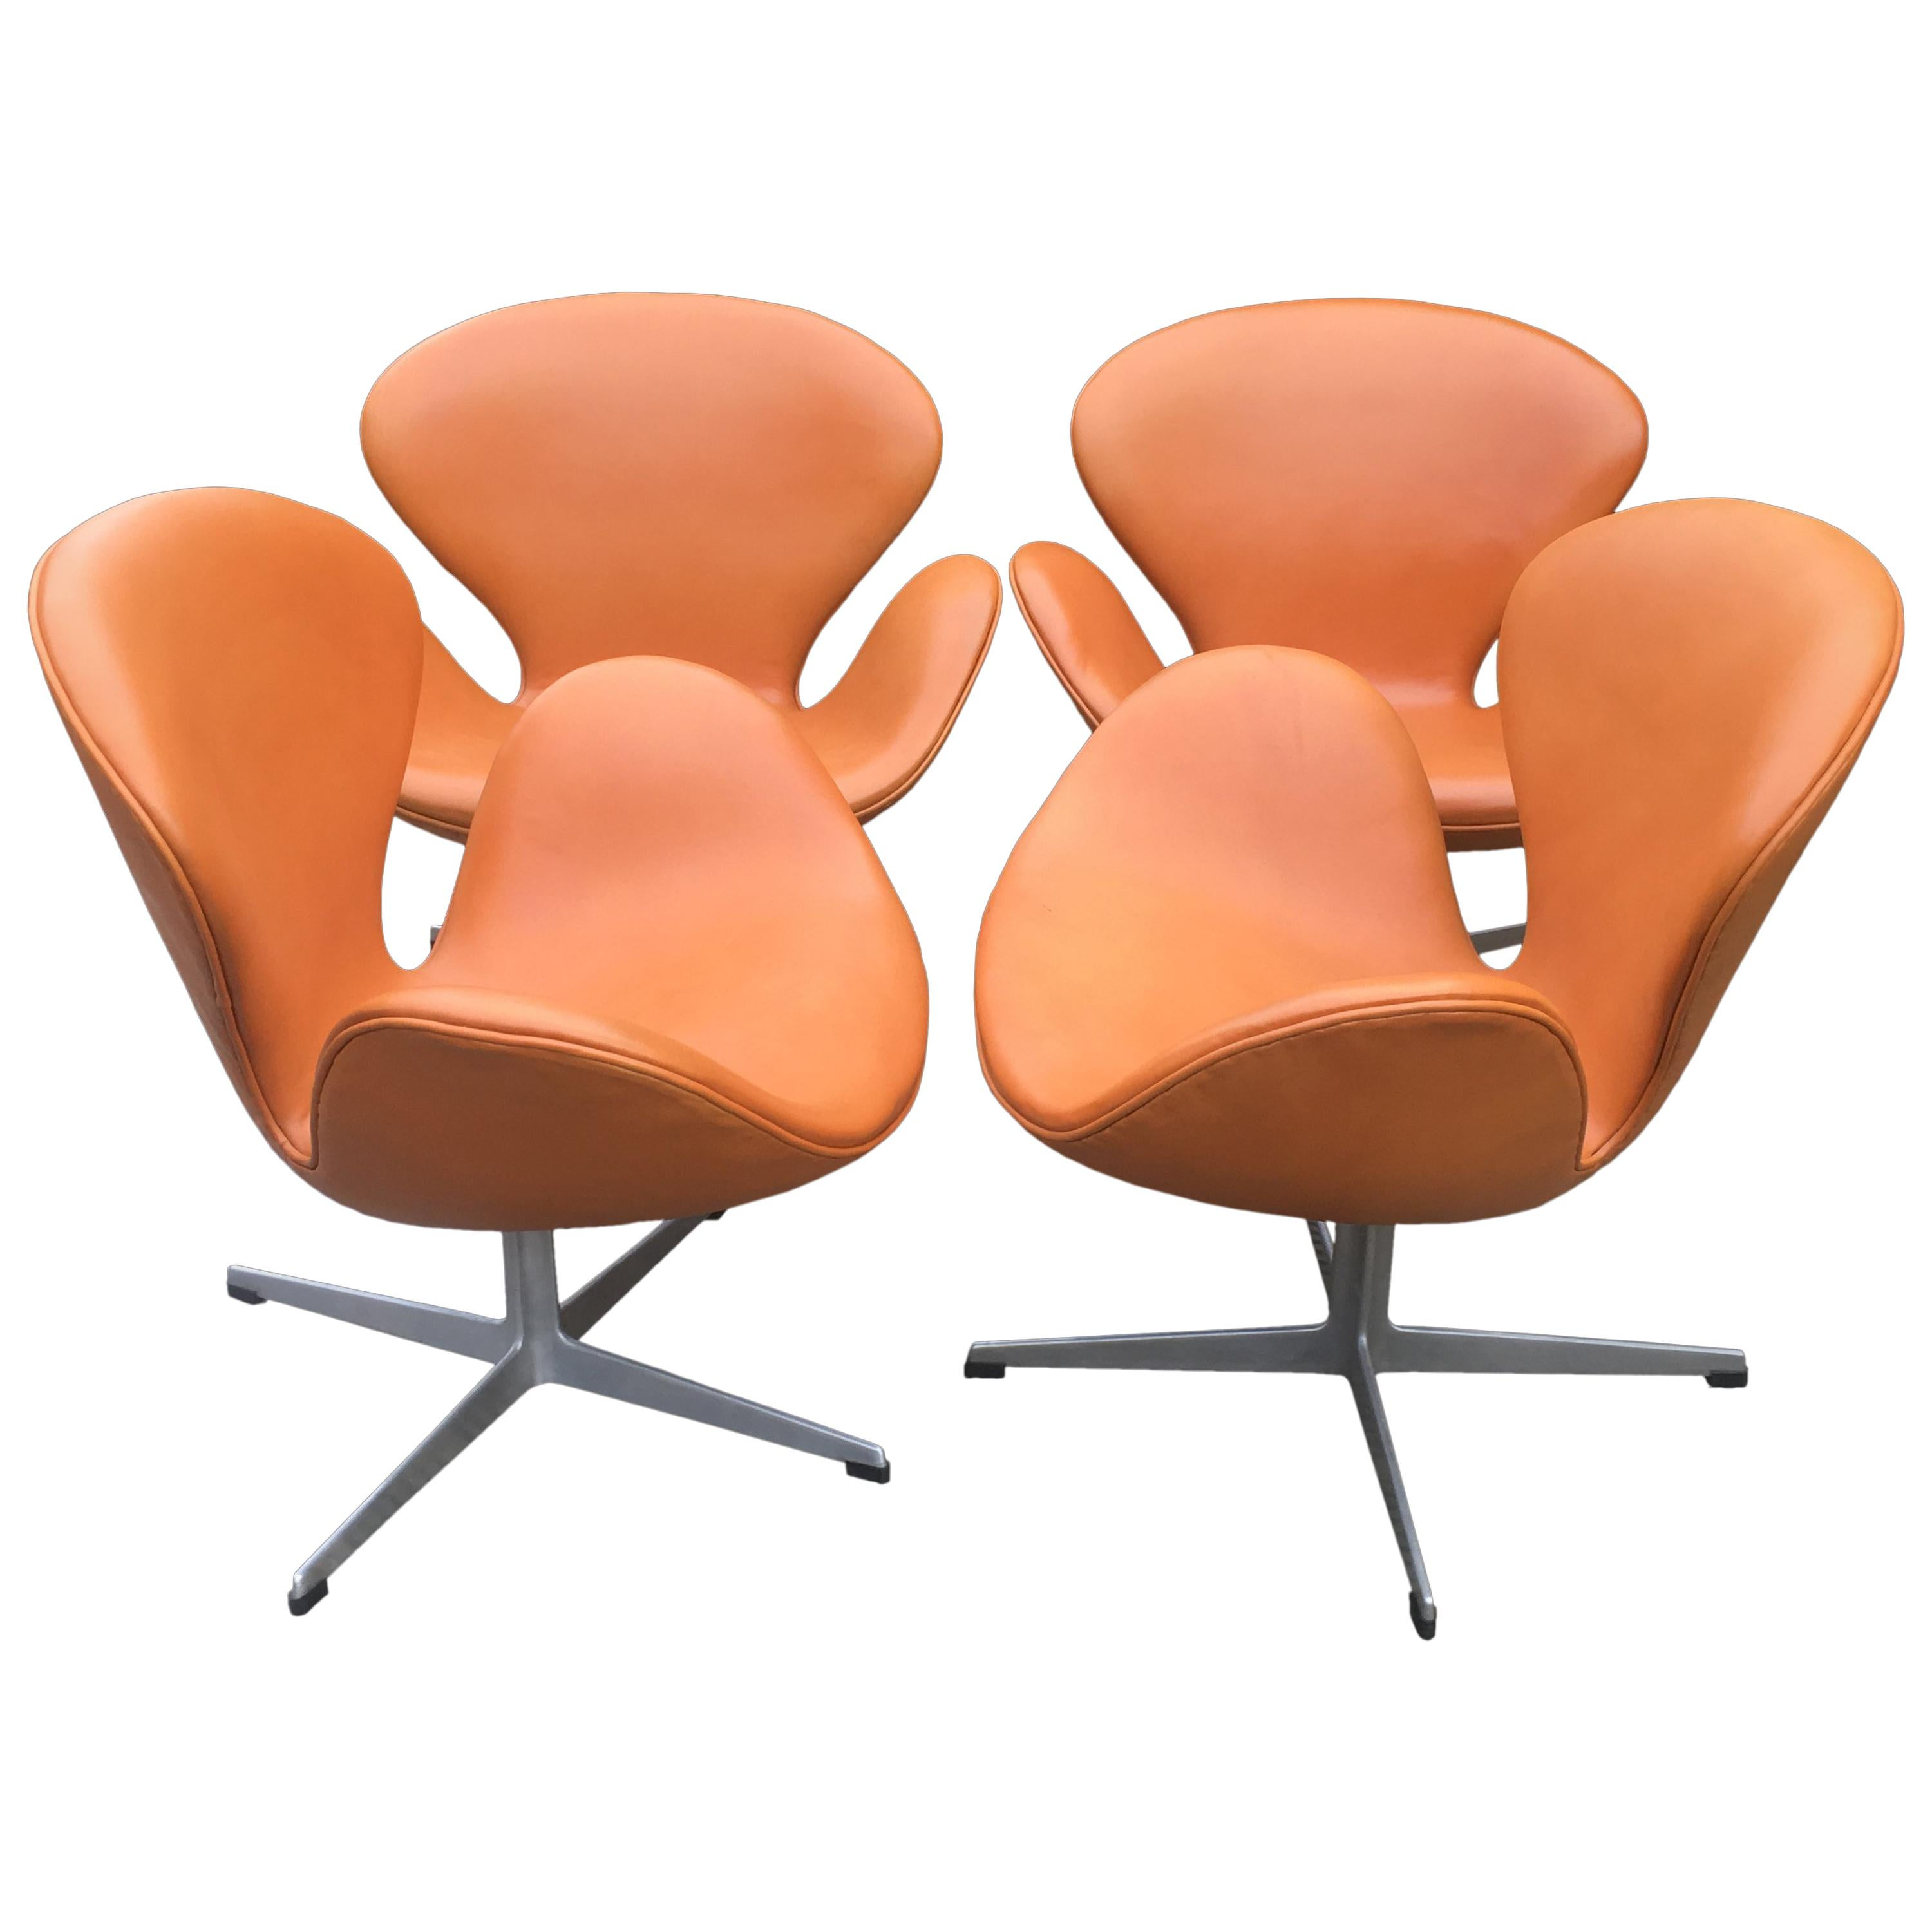 Rare Pair Of Cognac Leather Swan Chairs By Arne Jacobsen For Fritz Hansen At 1stdibs